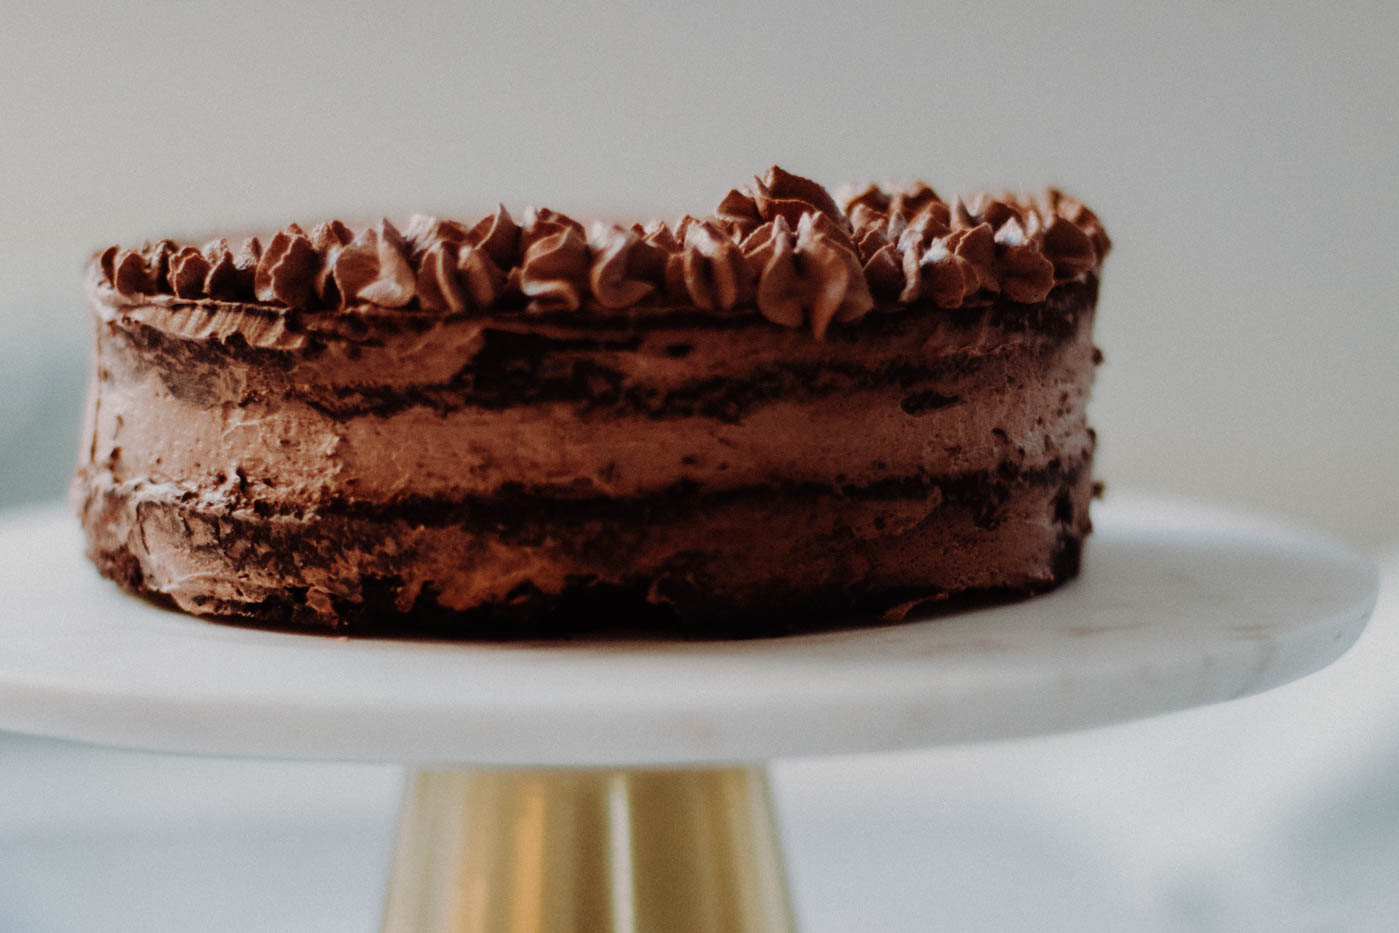 Paleo Keto Chocolate Mousse Cake - 1